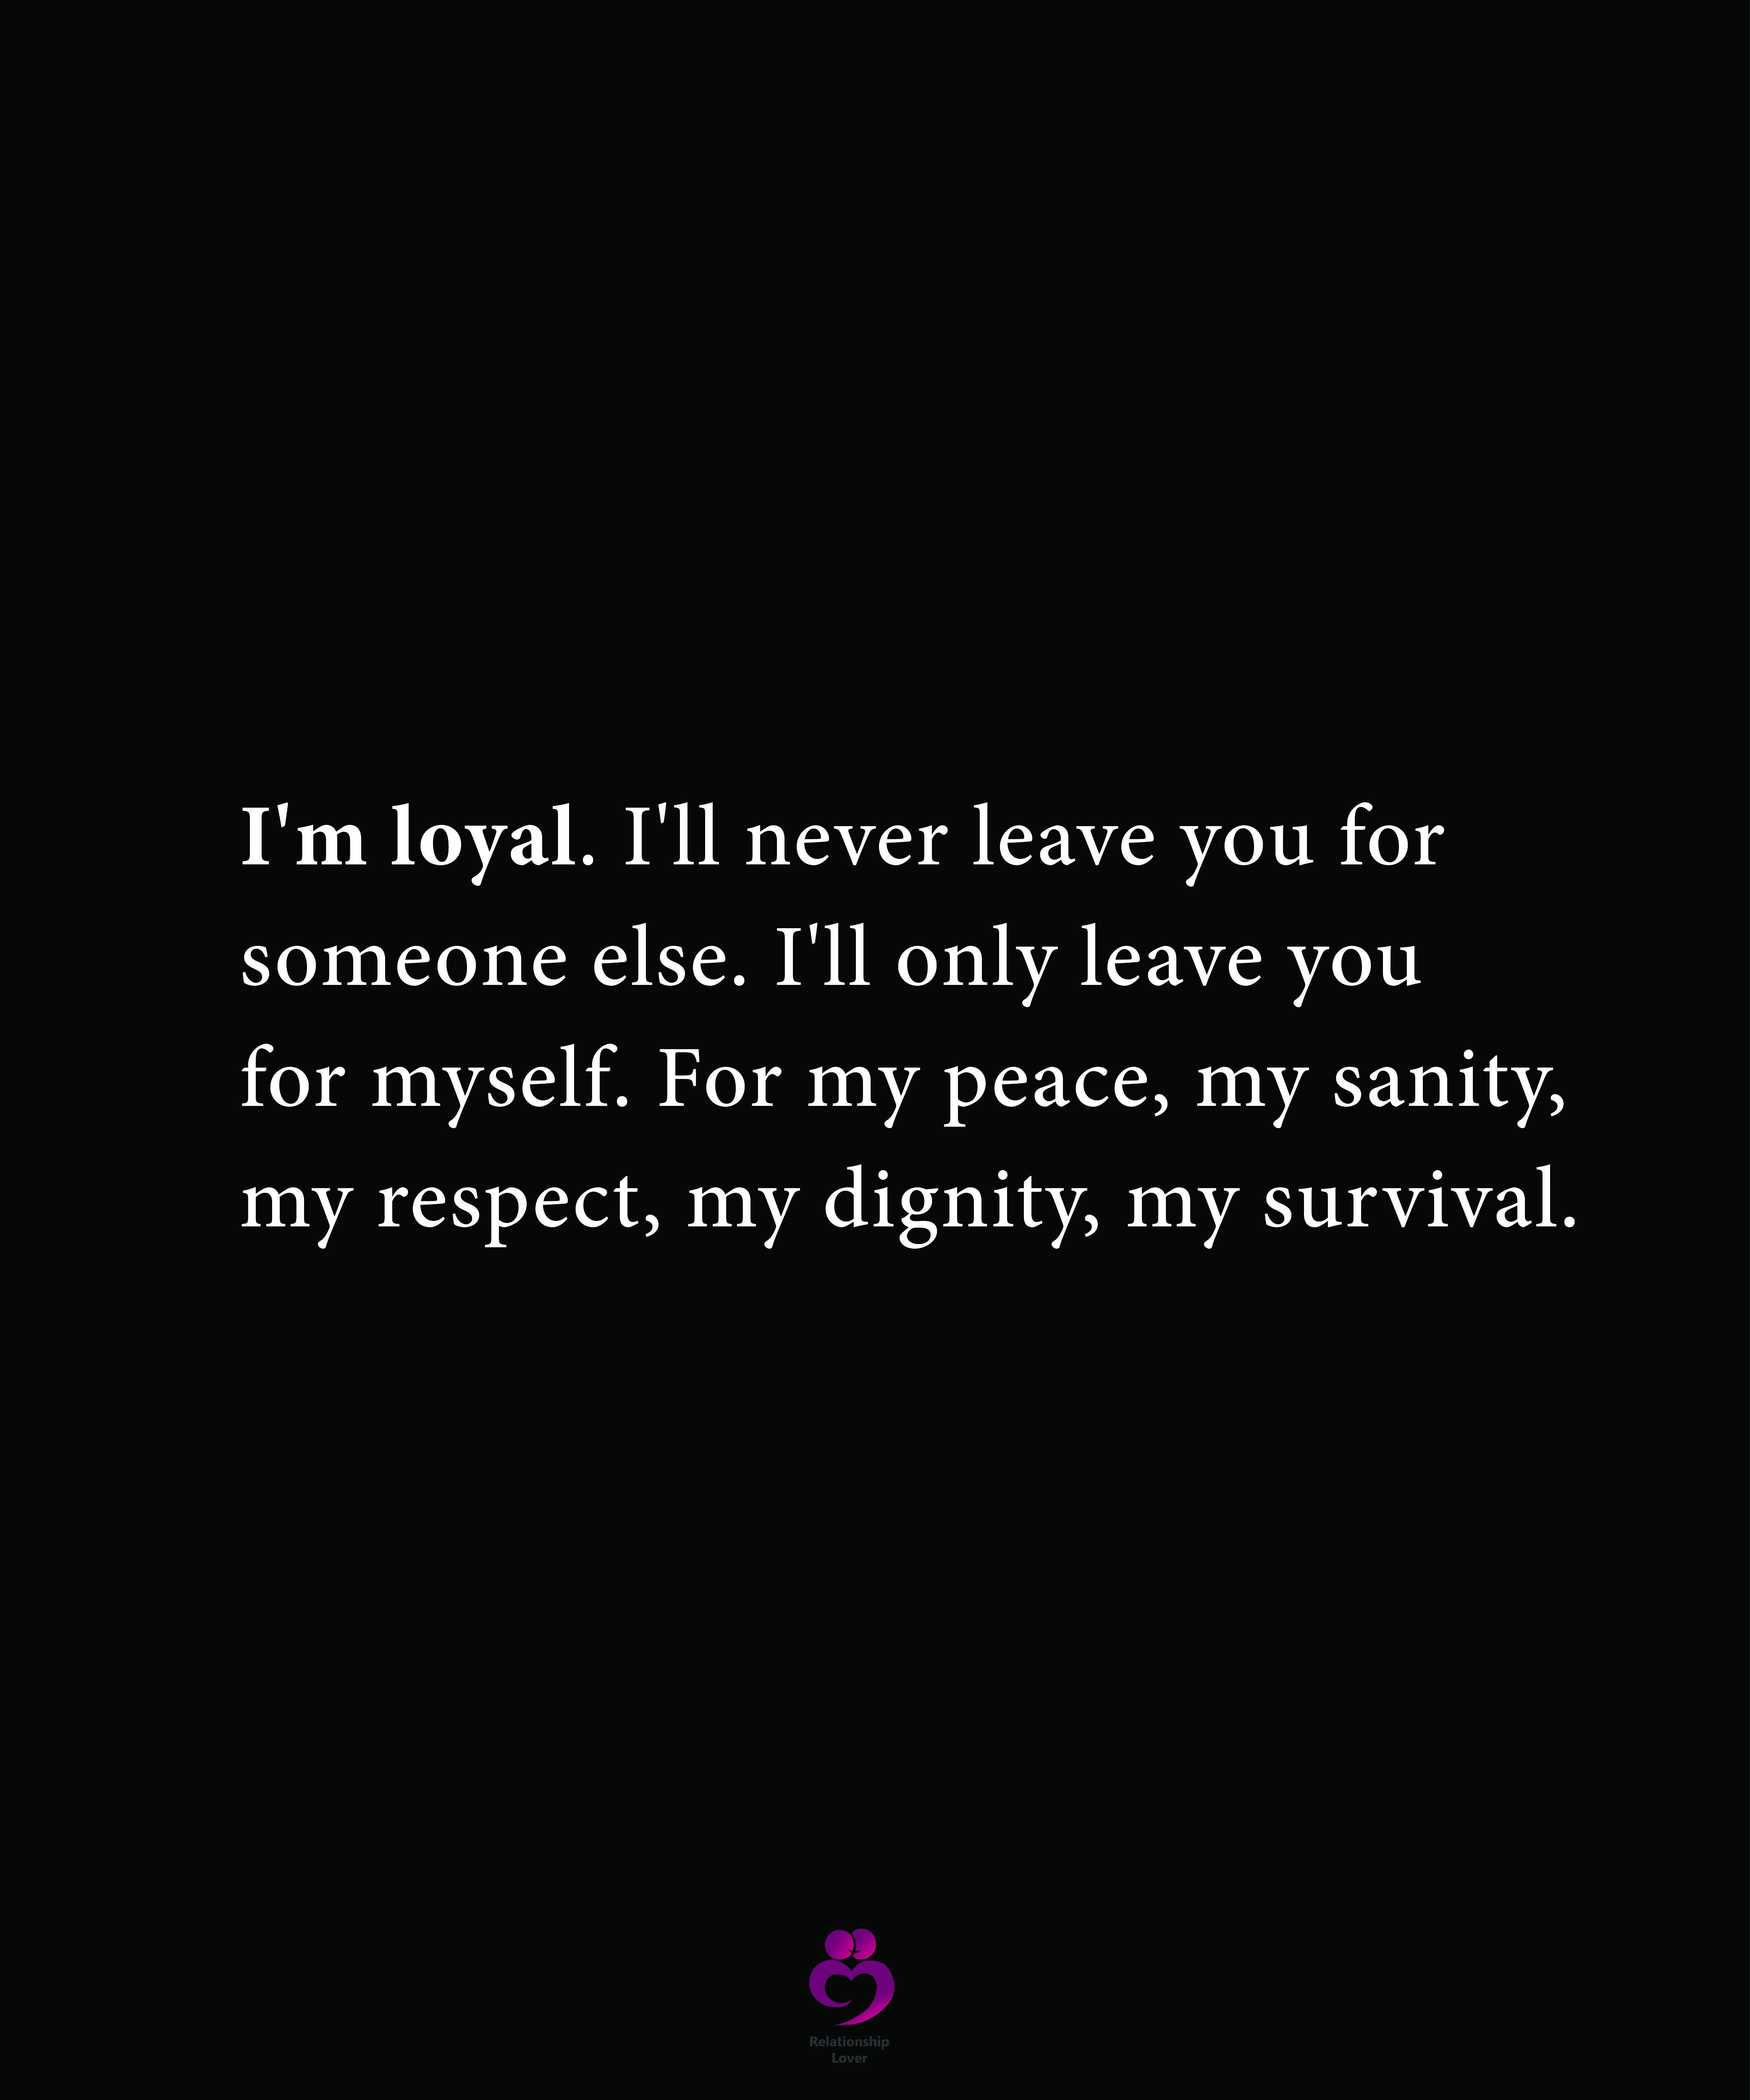 I M Loyal I Ll Never Leave You Ill Never Leave You Be Yourself Quotes Relationship Quotes